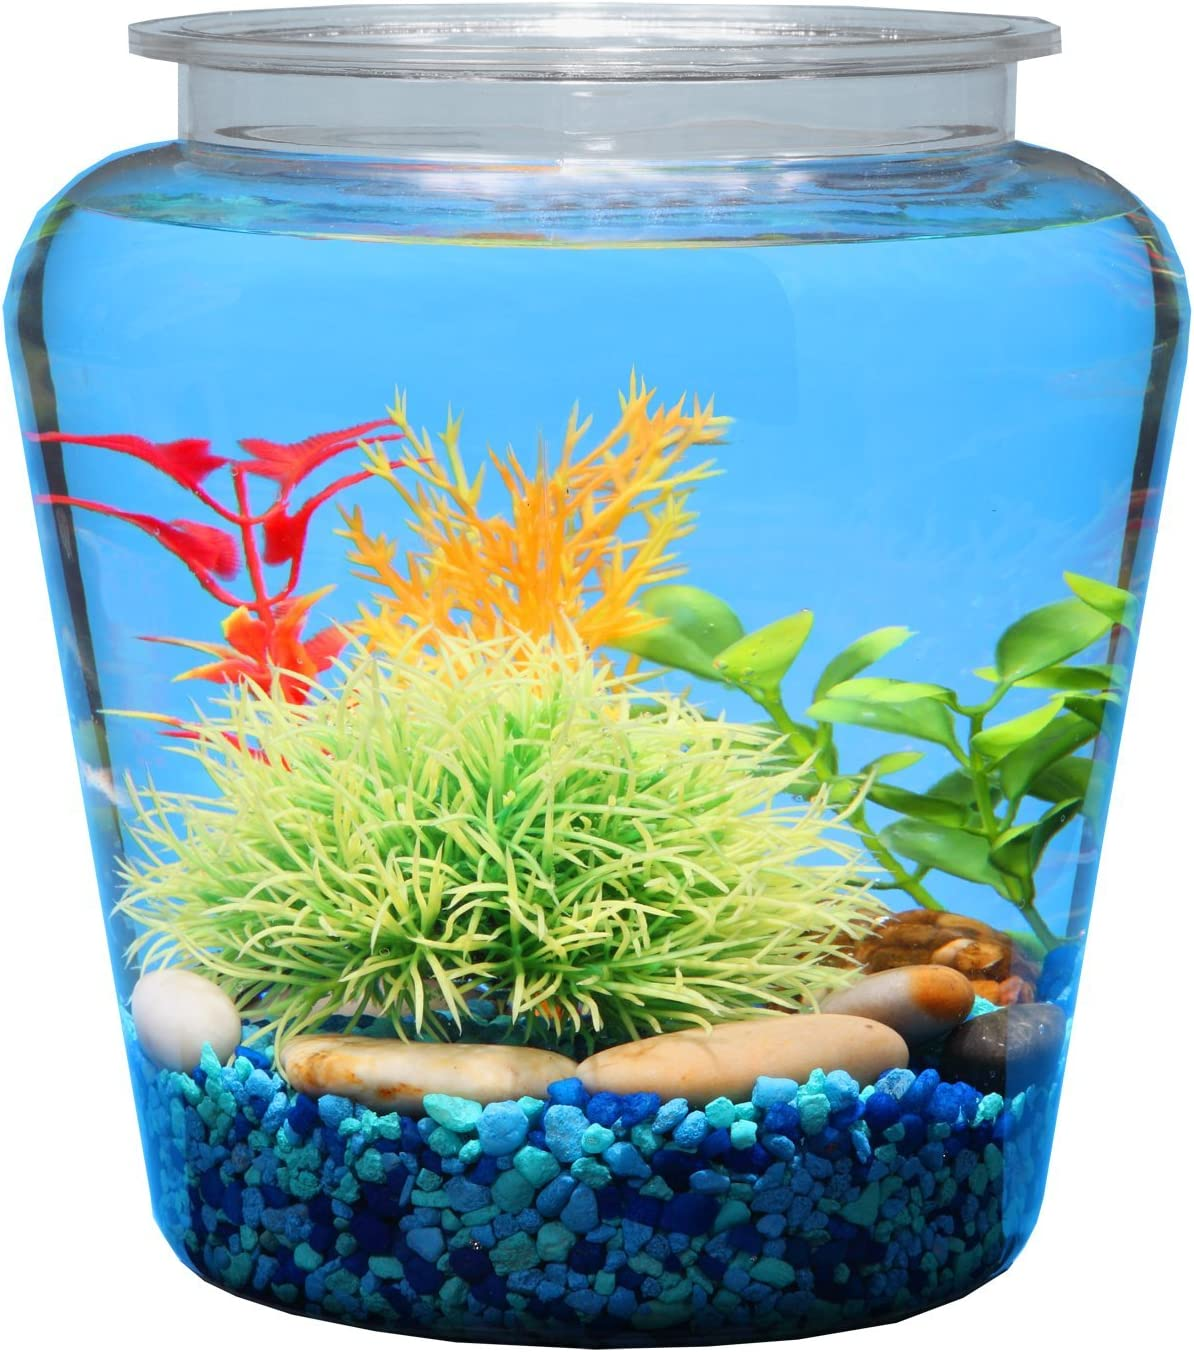 Koller Products 1-Gallon Fish Bowl, Shatterproof Plastic with Crystal-Clear Clarity, 7.25 DIA x 8 H Inches, Model Number: 49146000130